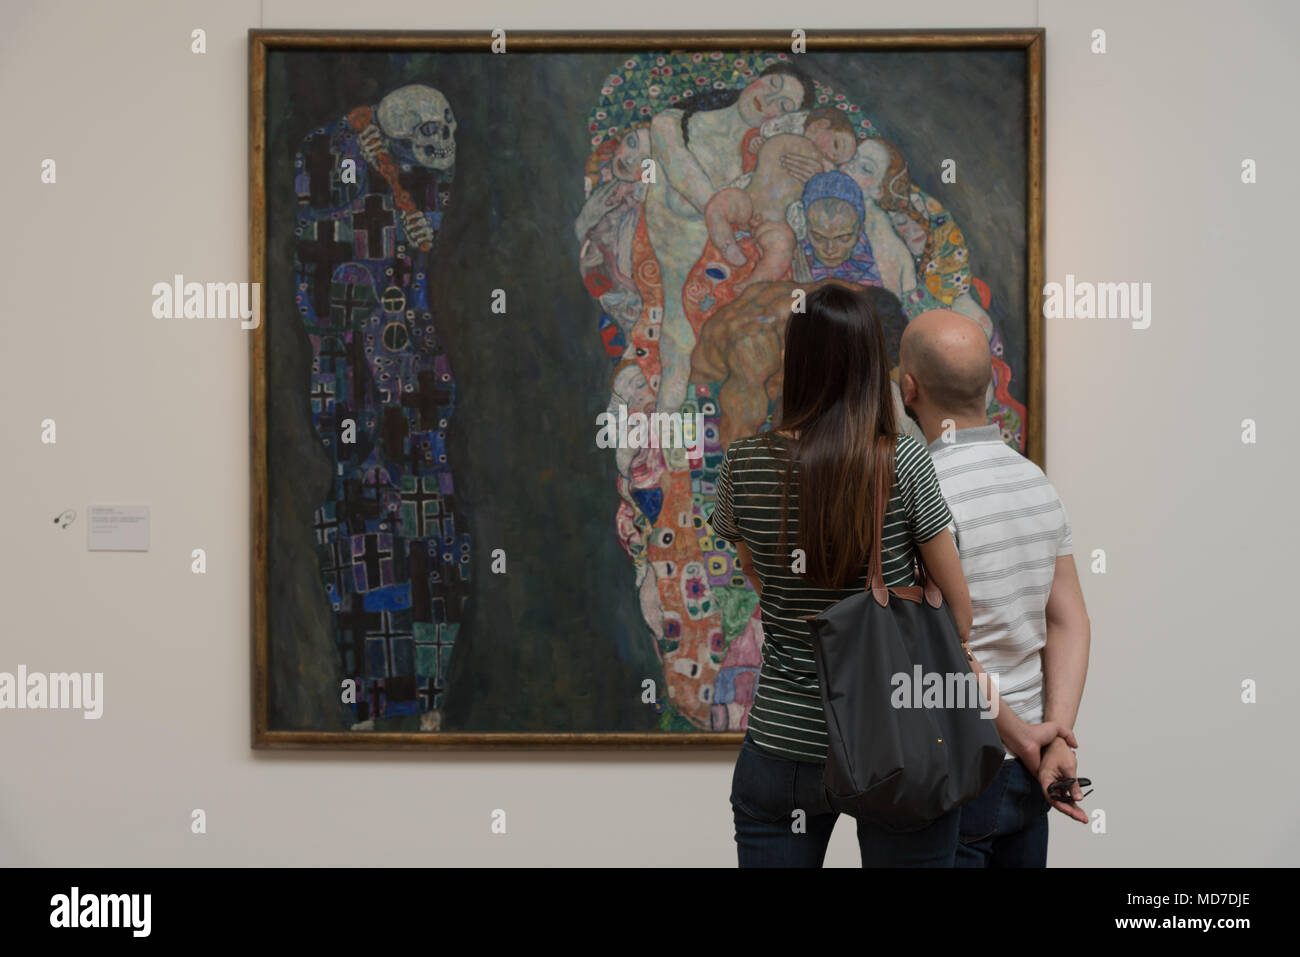 Two people stare at Gustav Klimt's Death and Life at the Leopold Museum in Vienna, Austria - Stock Image